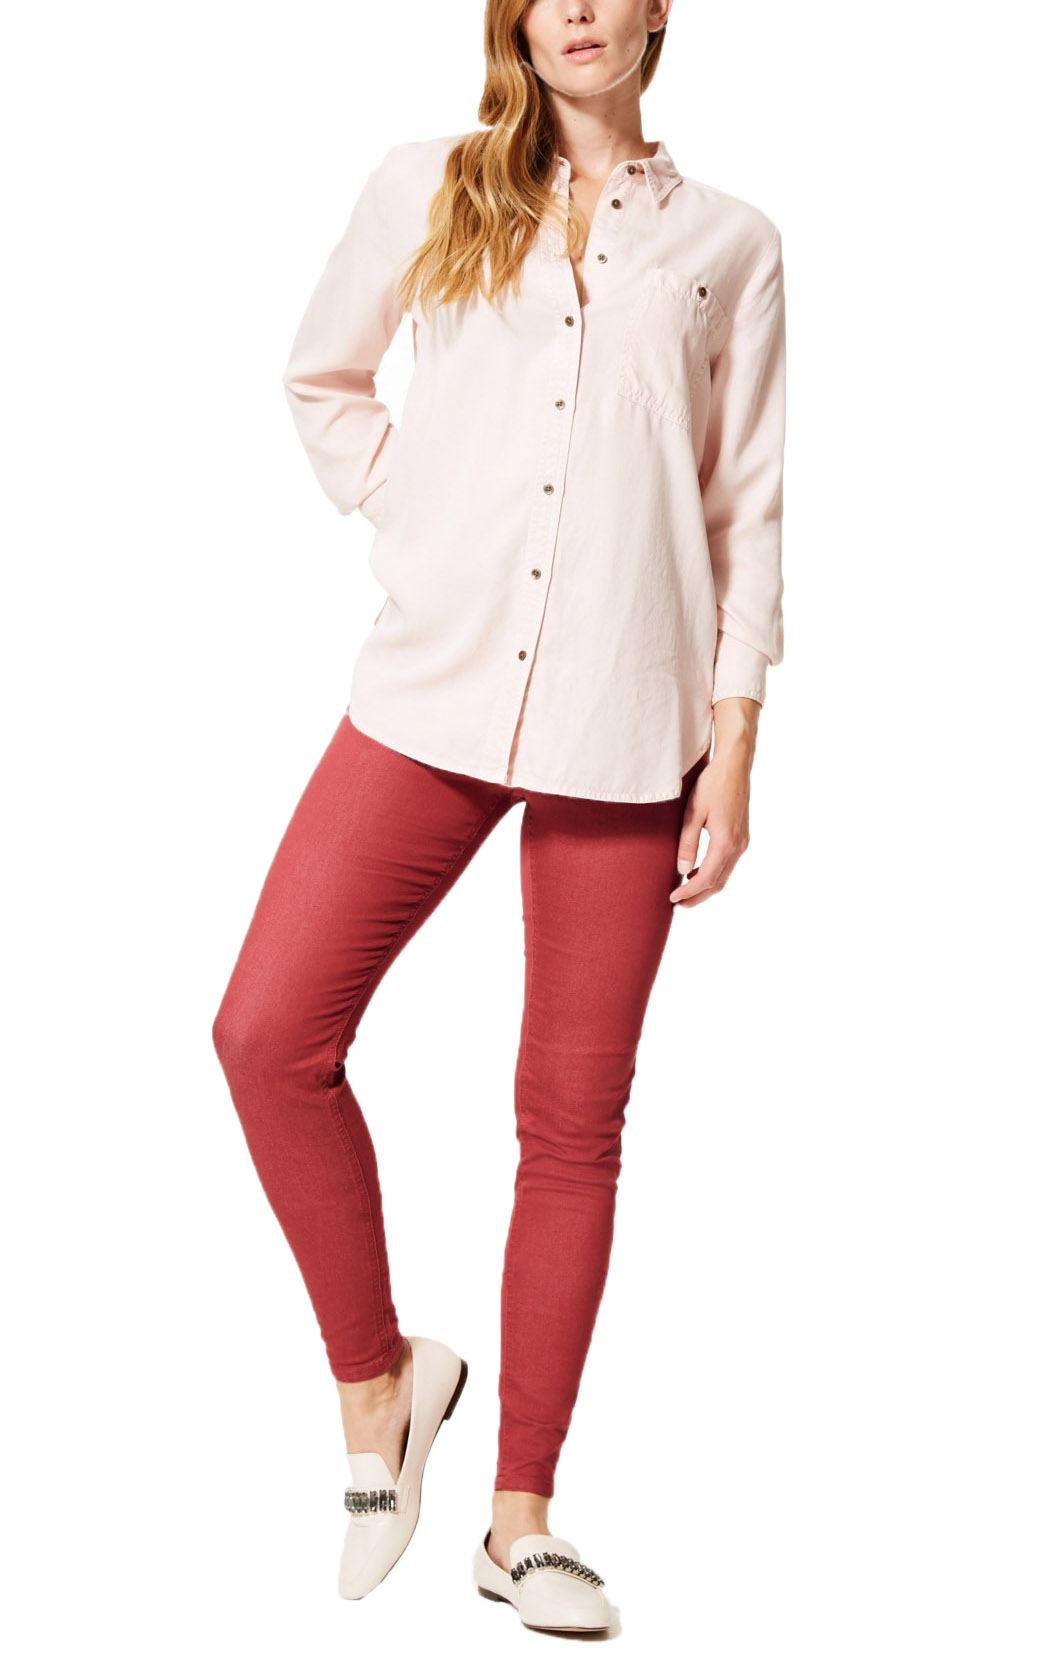 NEW-Ex-M-amp-S-Womens-Stretch-Fit-High-Waist-Skinny-Jeggings-Size-8-10-12-14-16-18 thumbnail 11